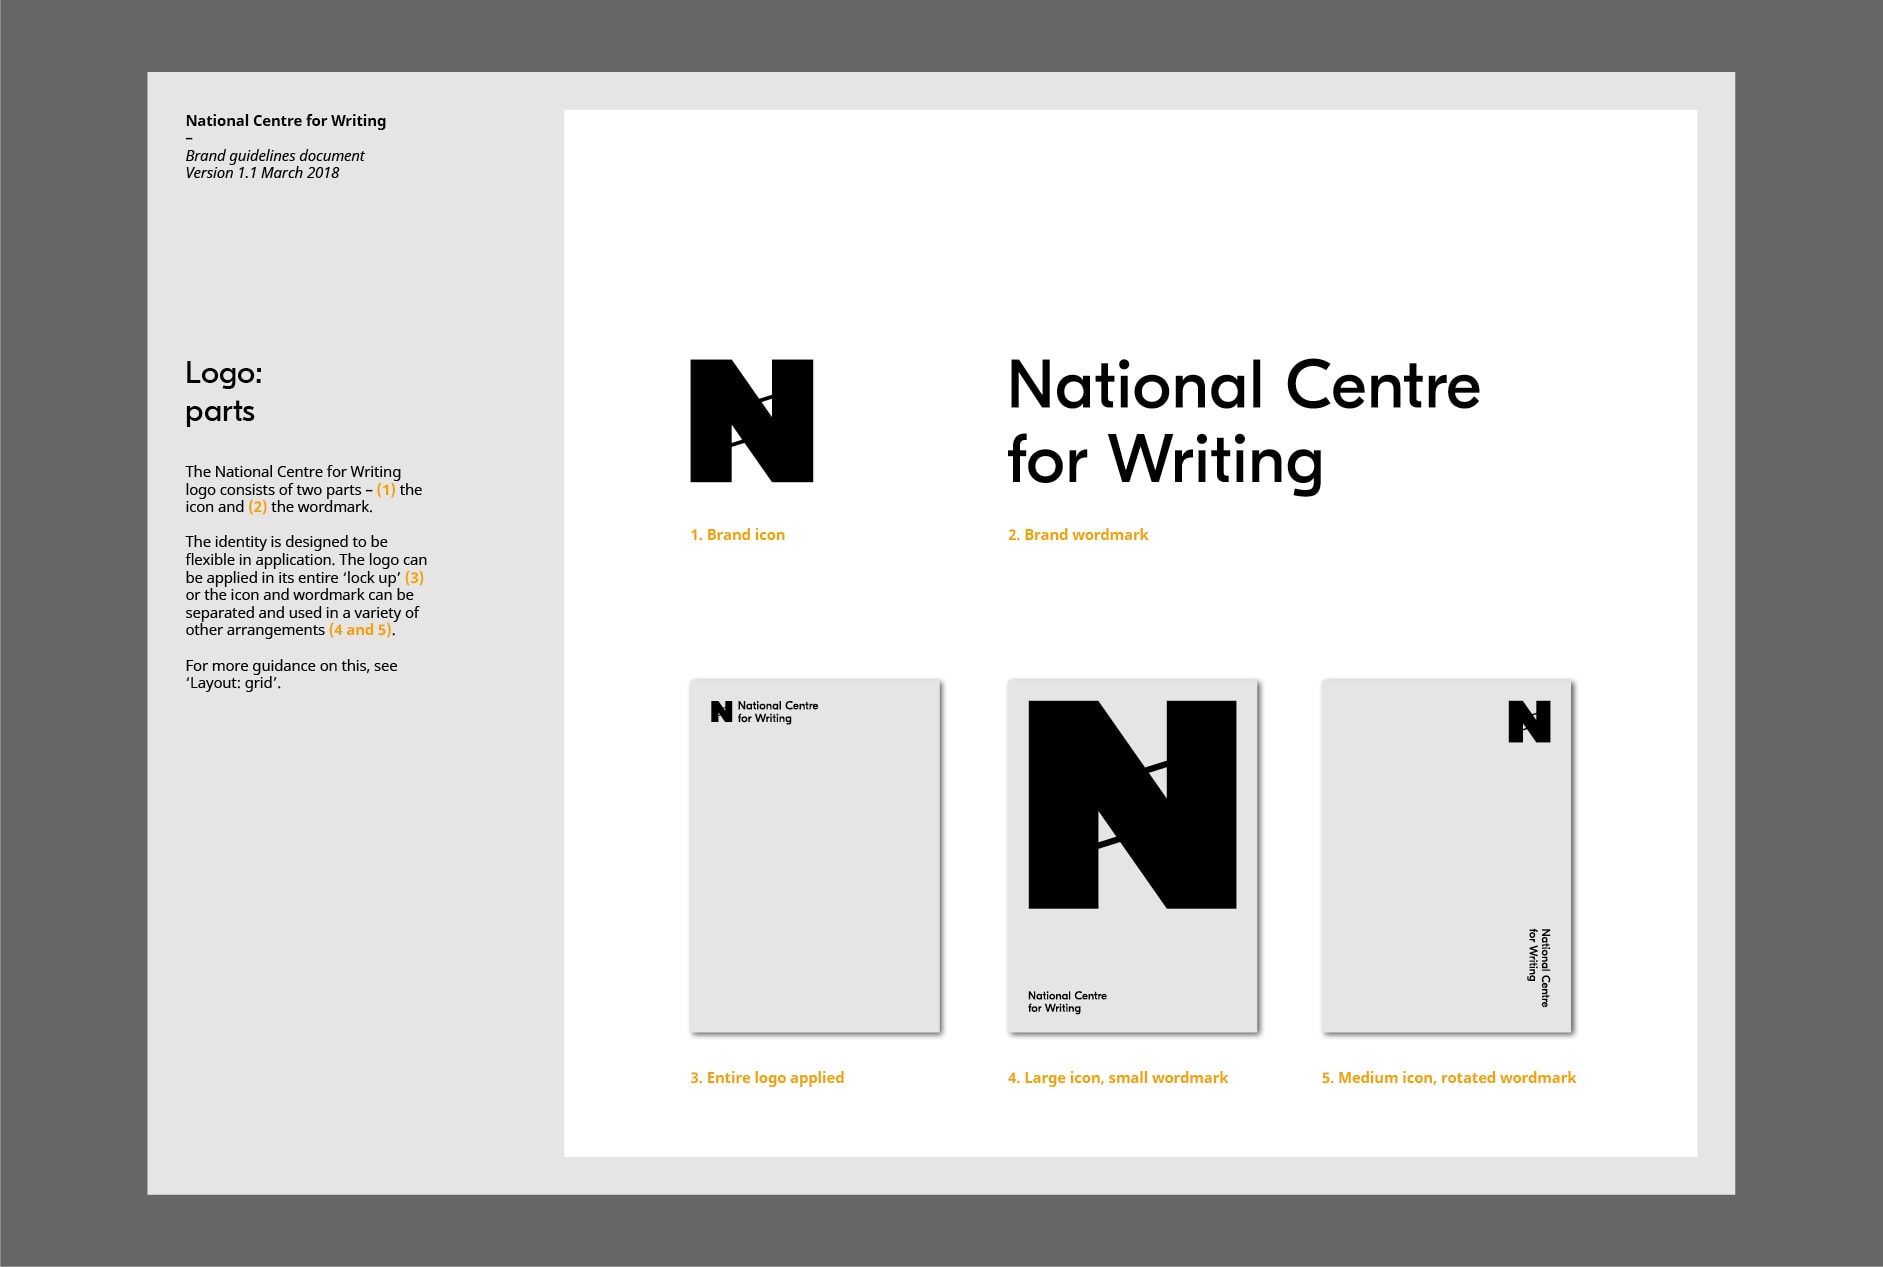 National Centre for Writing brand guidelines